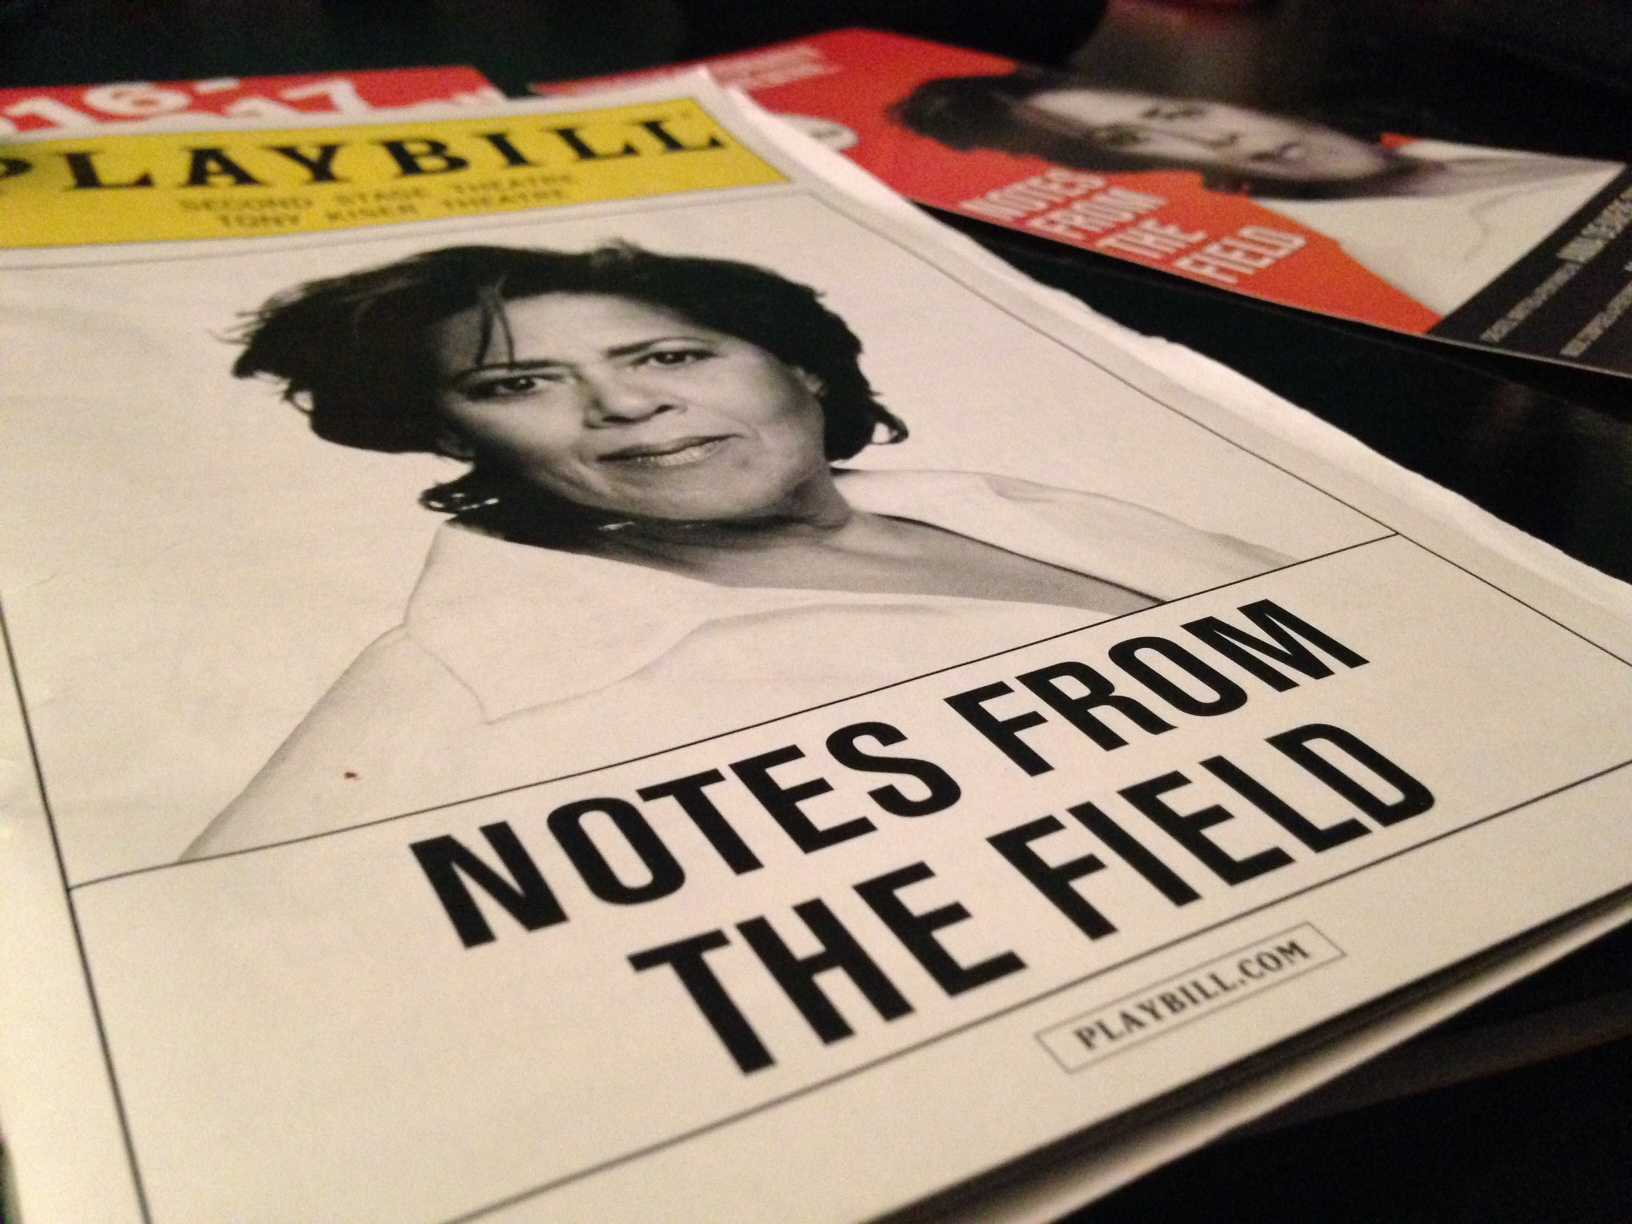 Playbill from the 'Notes From The Field' performance at the 2nd Stage Theater in New York City on December 1, 2016.